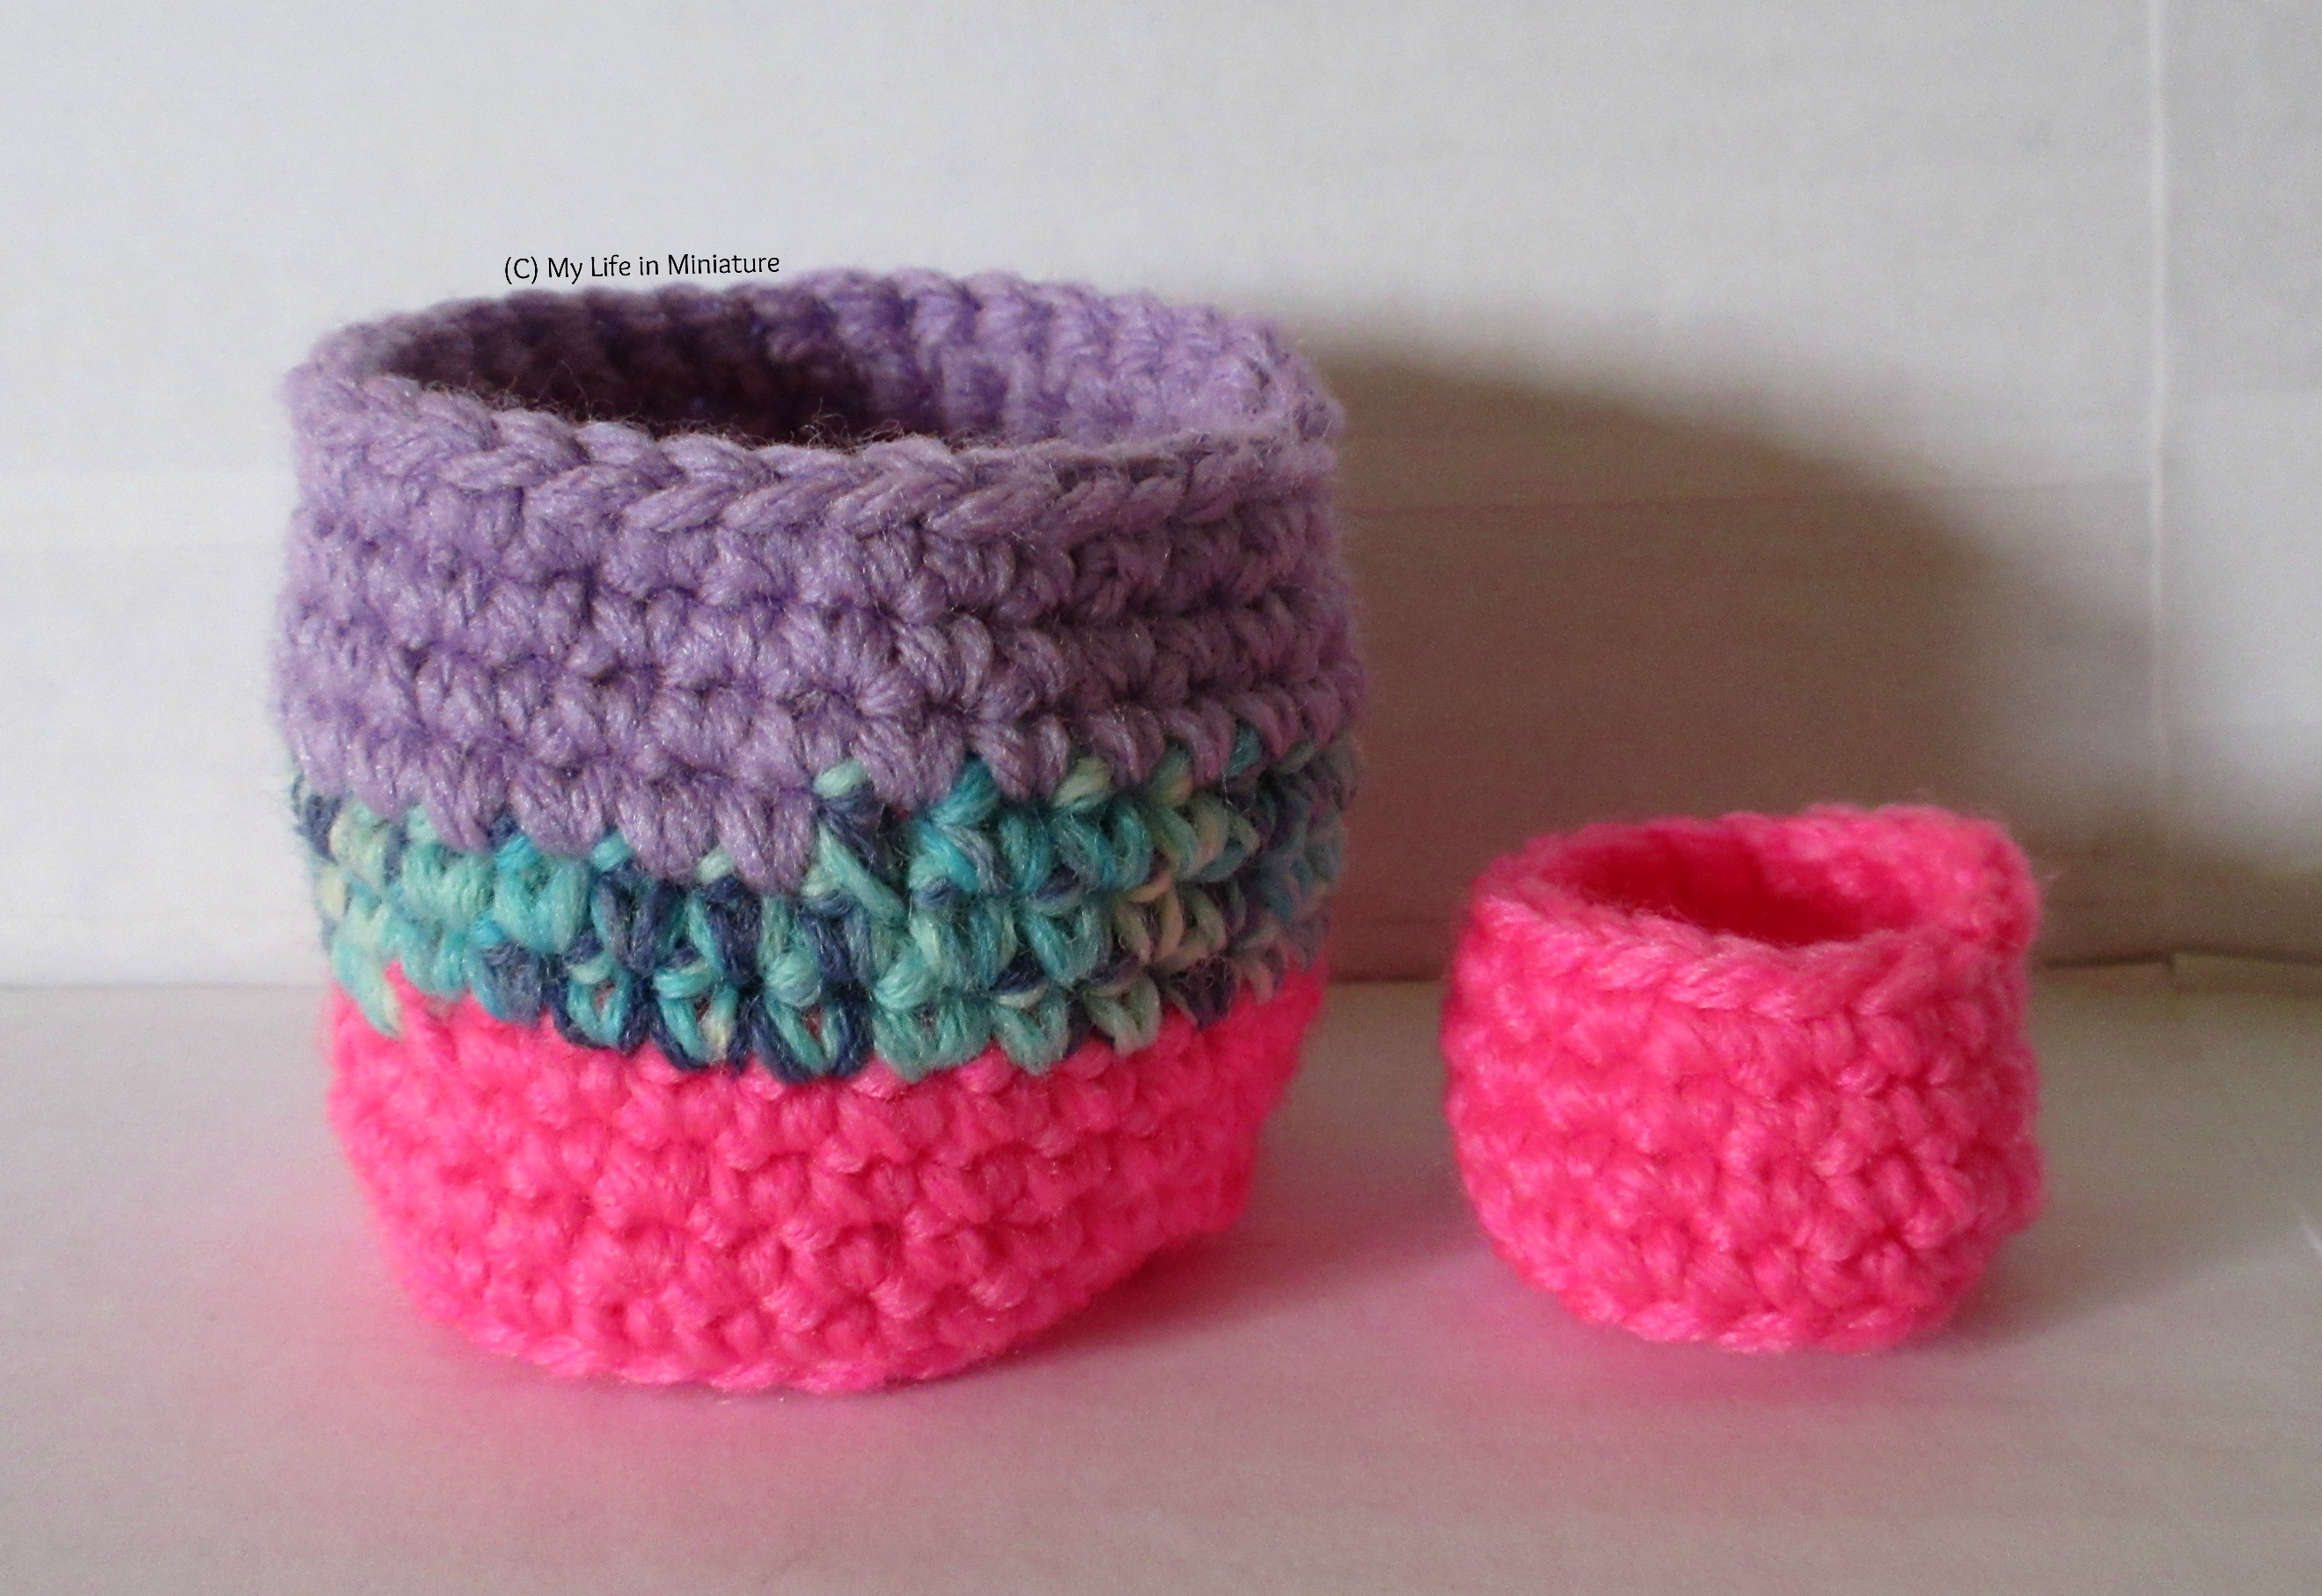 Two crocheted birds' nest/cup-shaped objects stand side-by-side against a white background. One is larger and made of hot pink, variegated blue and plain purple yarn. The other is smaller and hot pink.